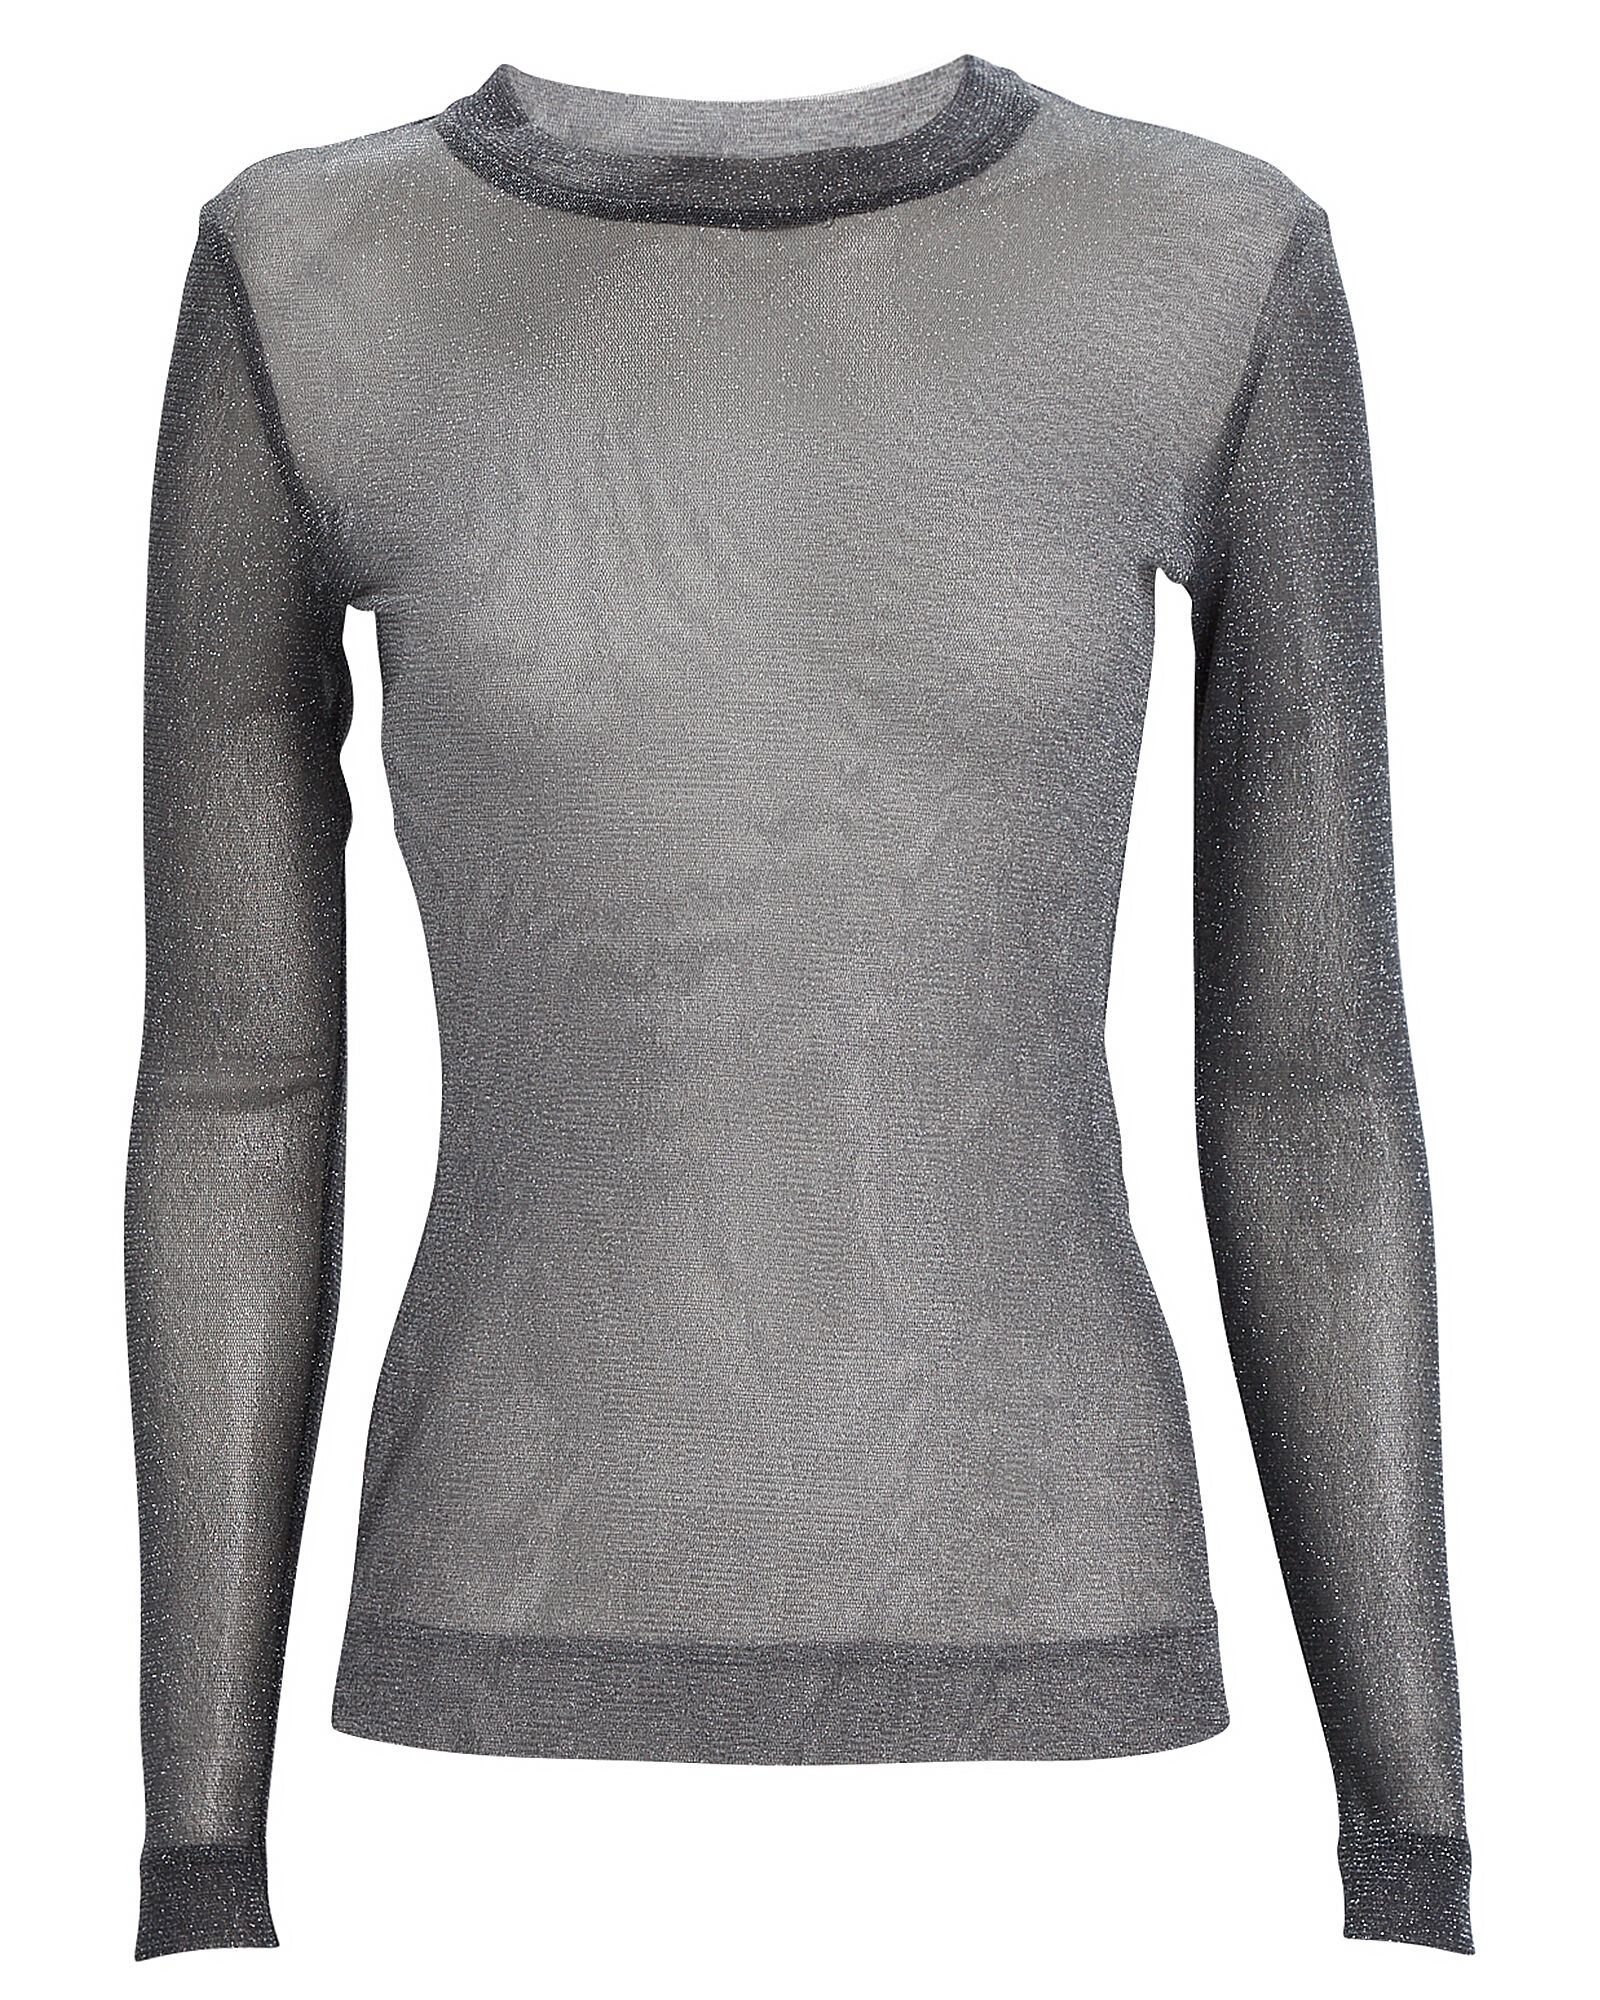 Bella Long Sleeve Mesh Top, BLACK, hi-res